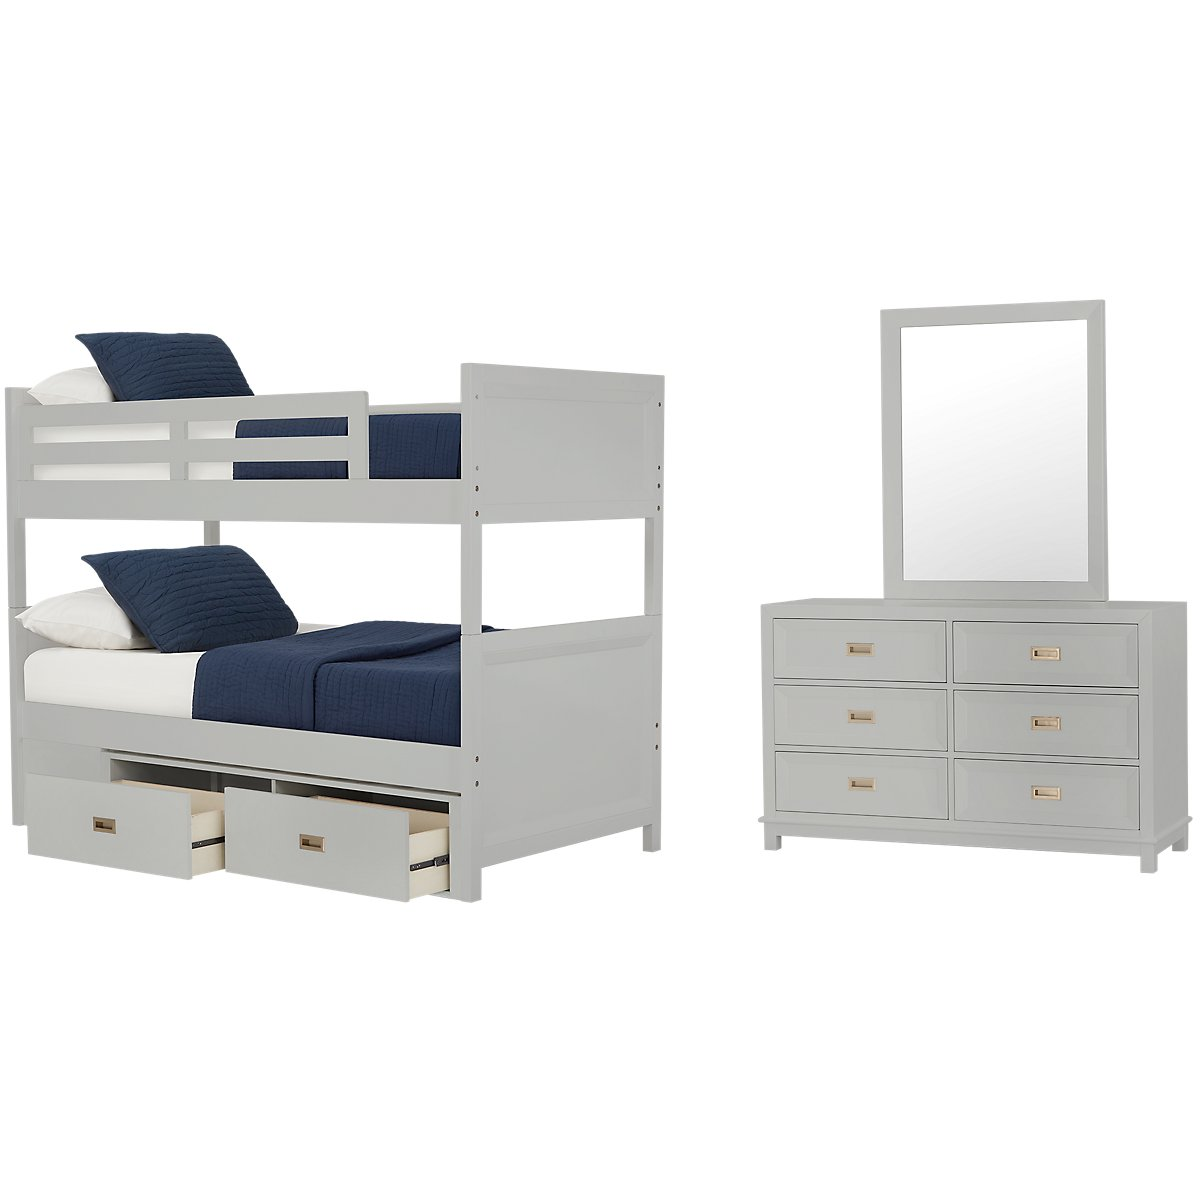 Ryder Gray Wood Bunk Bed Storage Bedroom